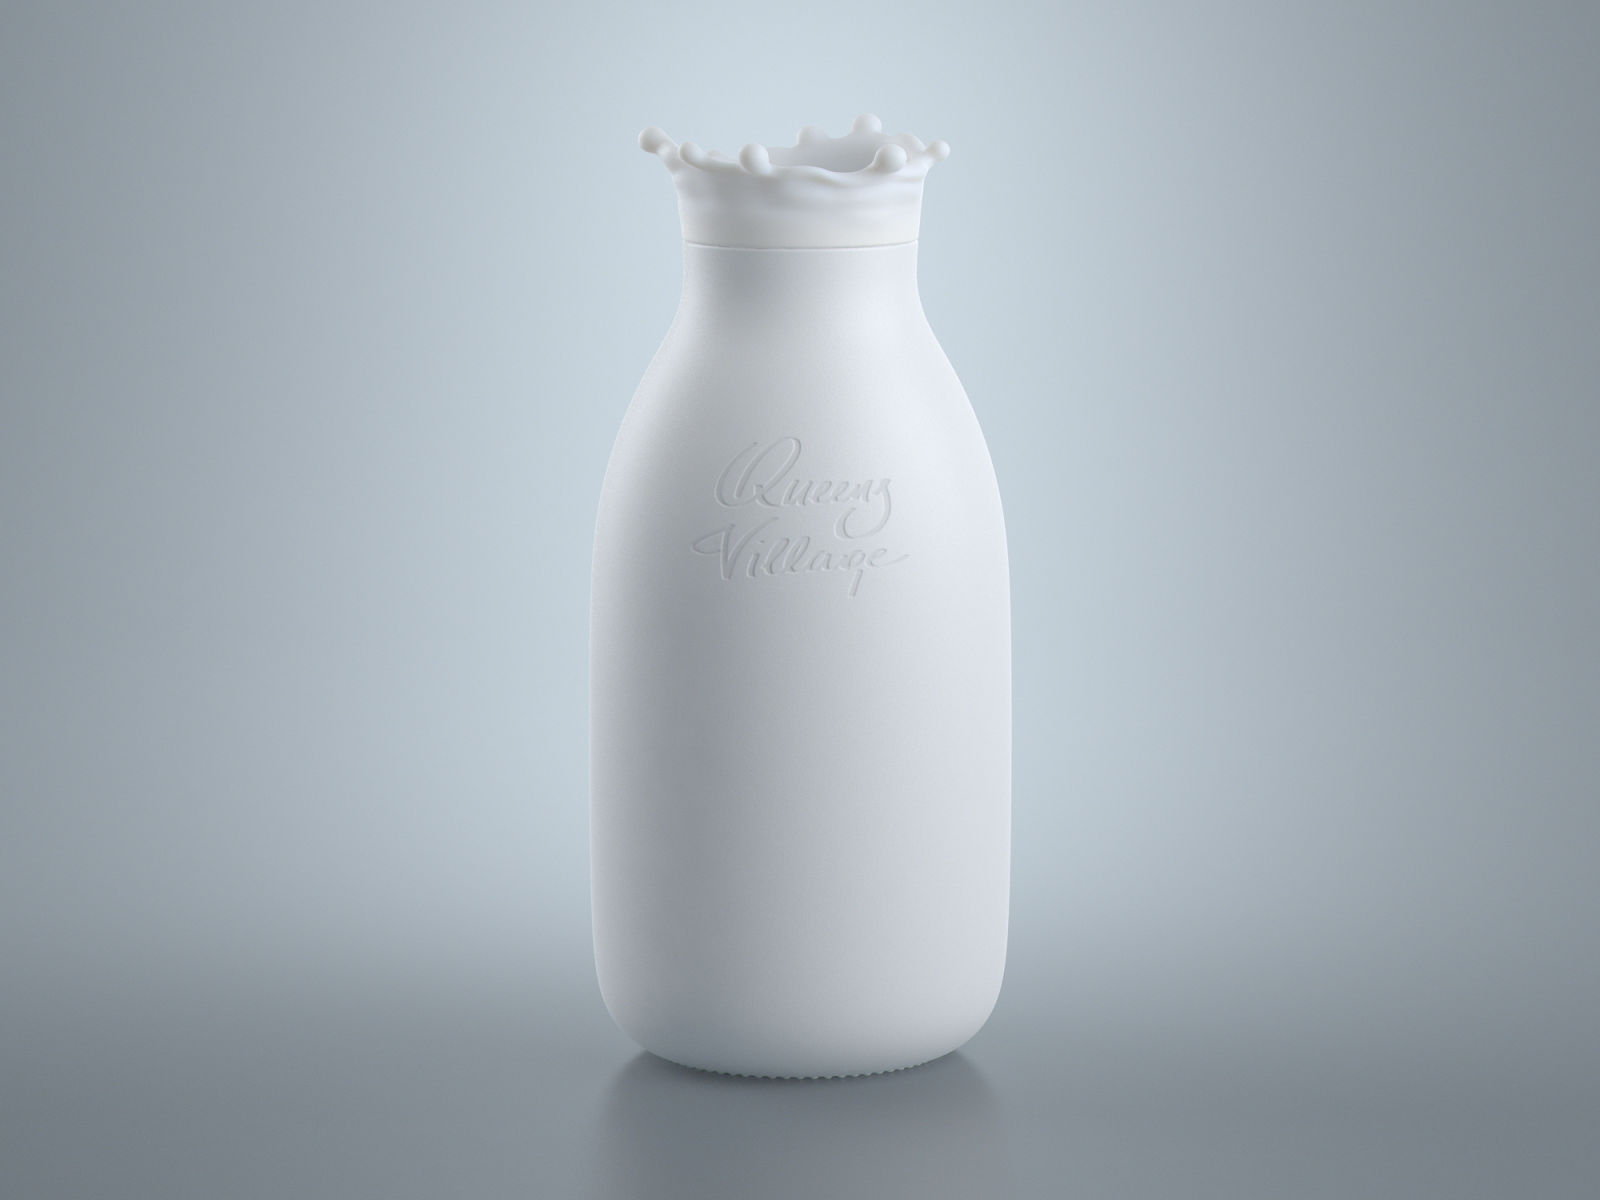 Milk Bottle Design Png - Milk Bottle Concept on Packaging of the World - Creative Package ...